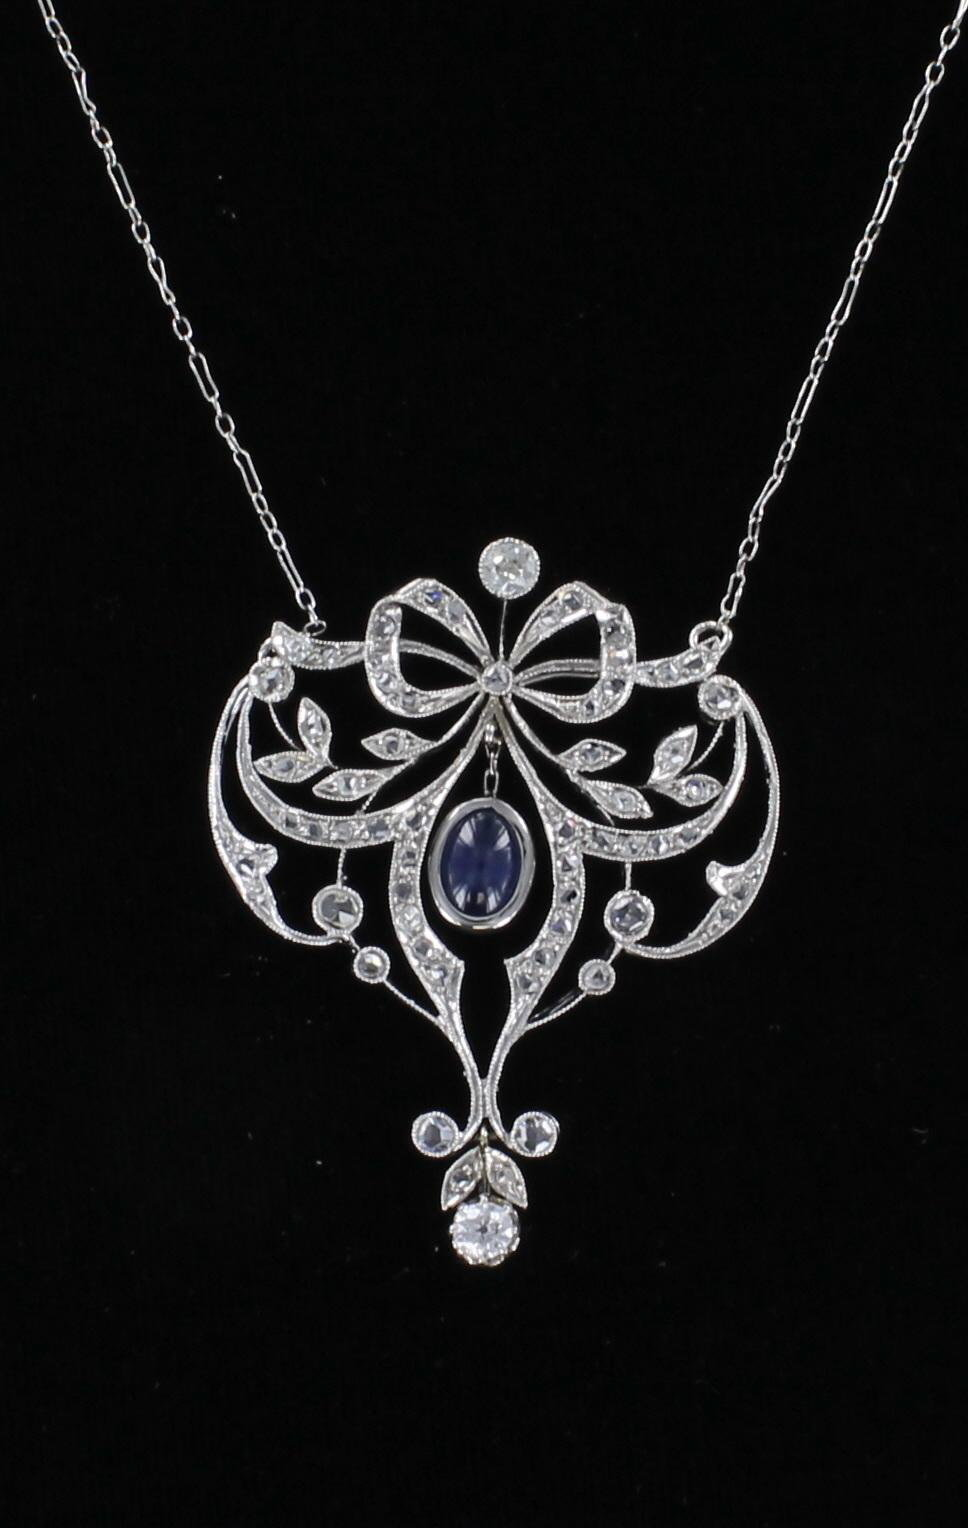 18KT SAPPHIRE AND DIAMOND BOW NECKLACE CIRCA 1920 198-23007